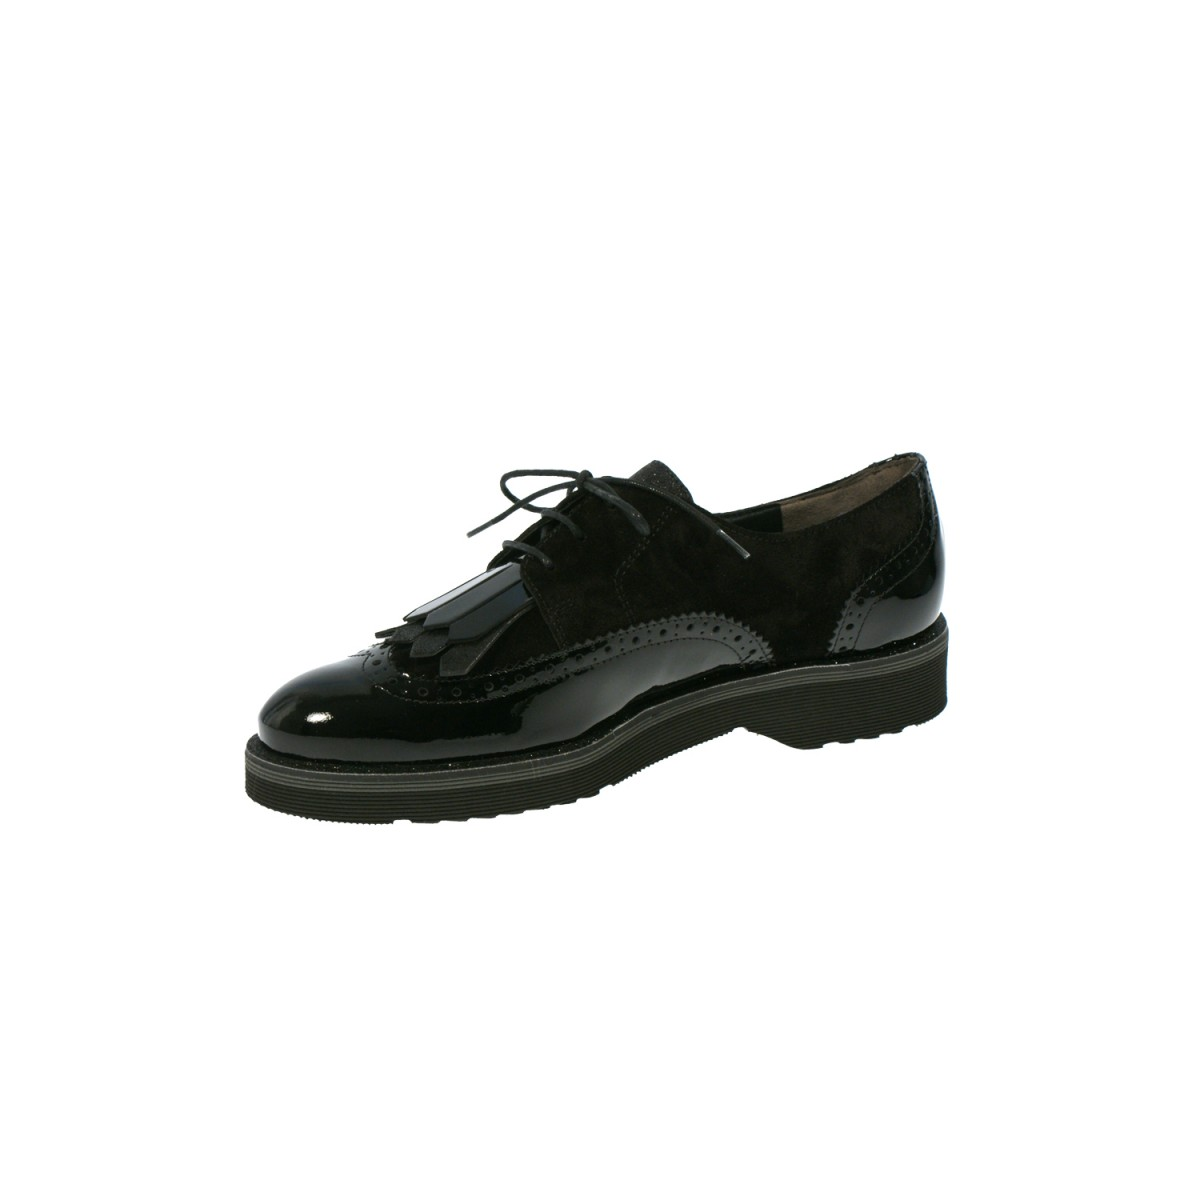 Paul Green 1019-00 Black-35